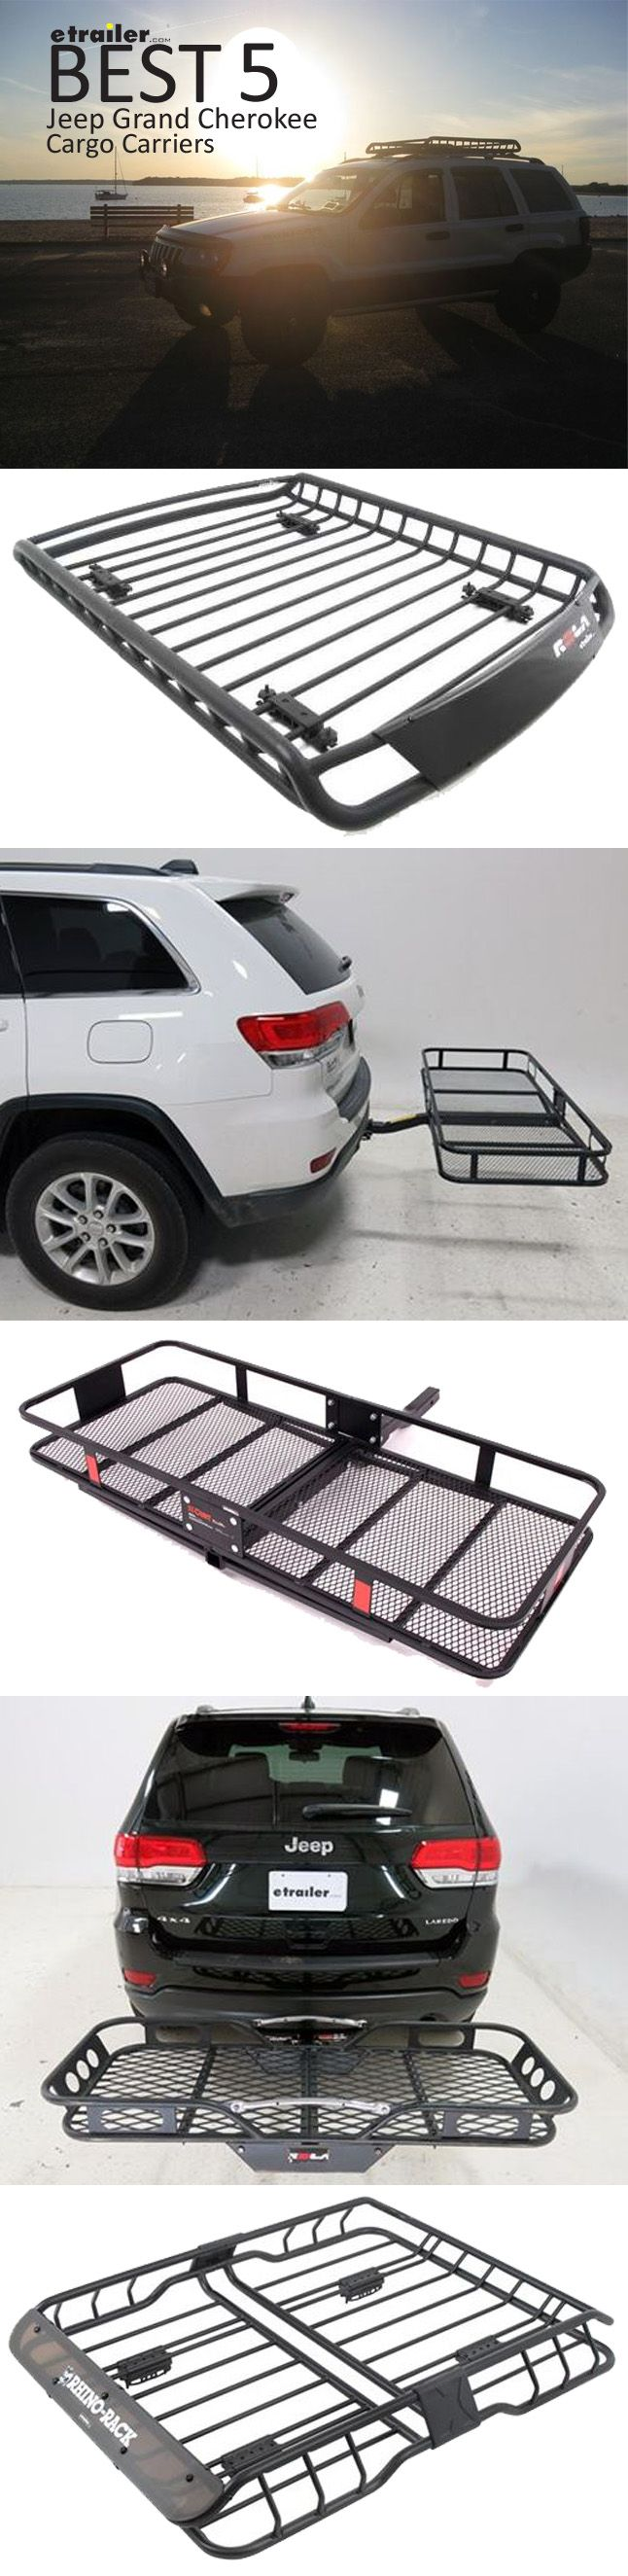 Here are the best cargo carriers for your jeep grand cherokee find the right roof mounted cargo basket or hitch mounted cargo carrier so you can carry all